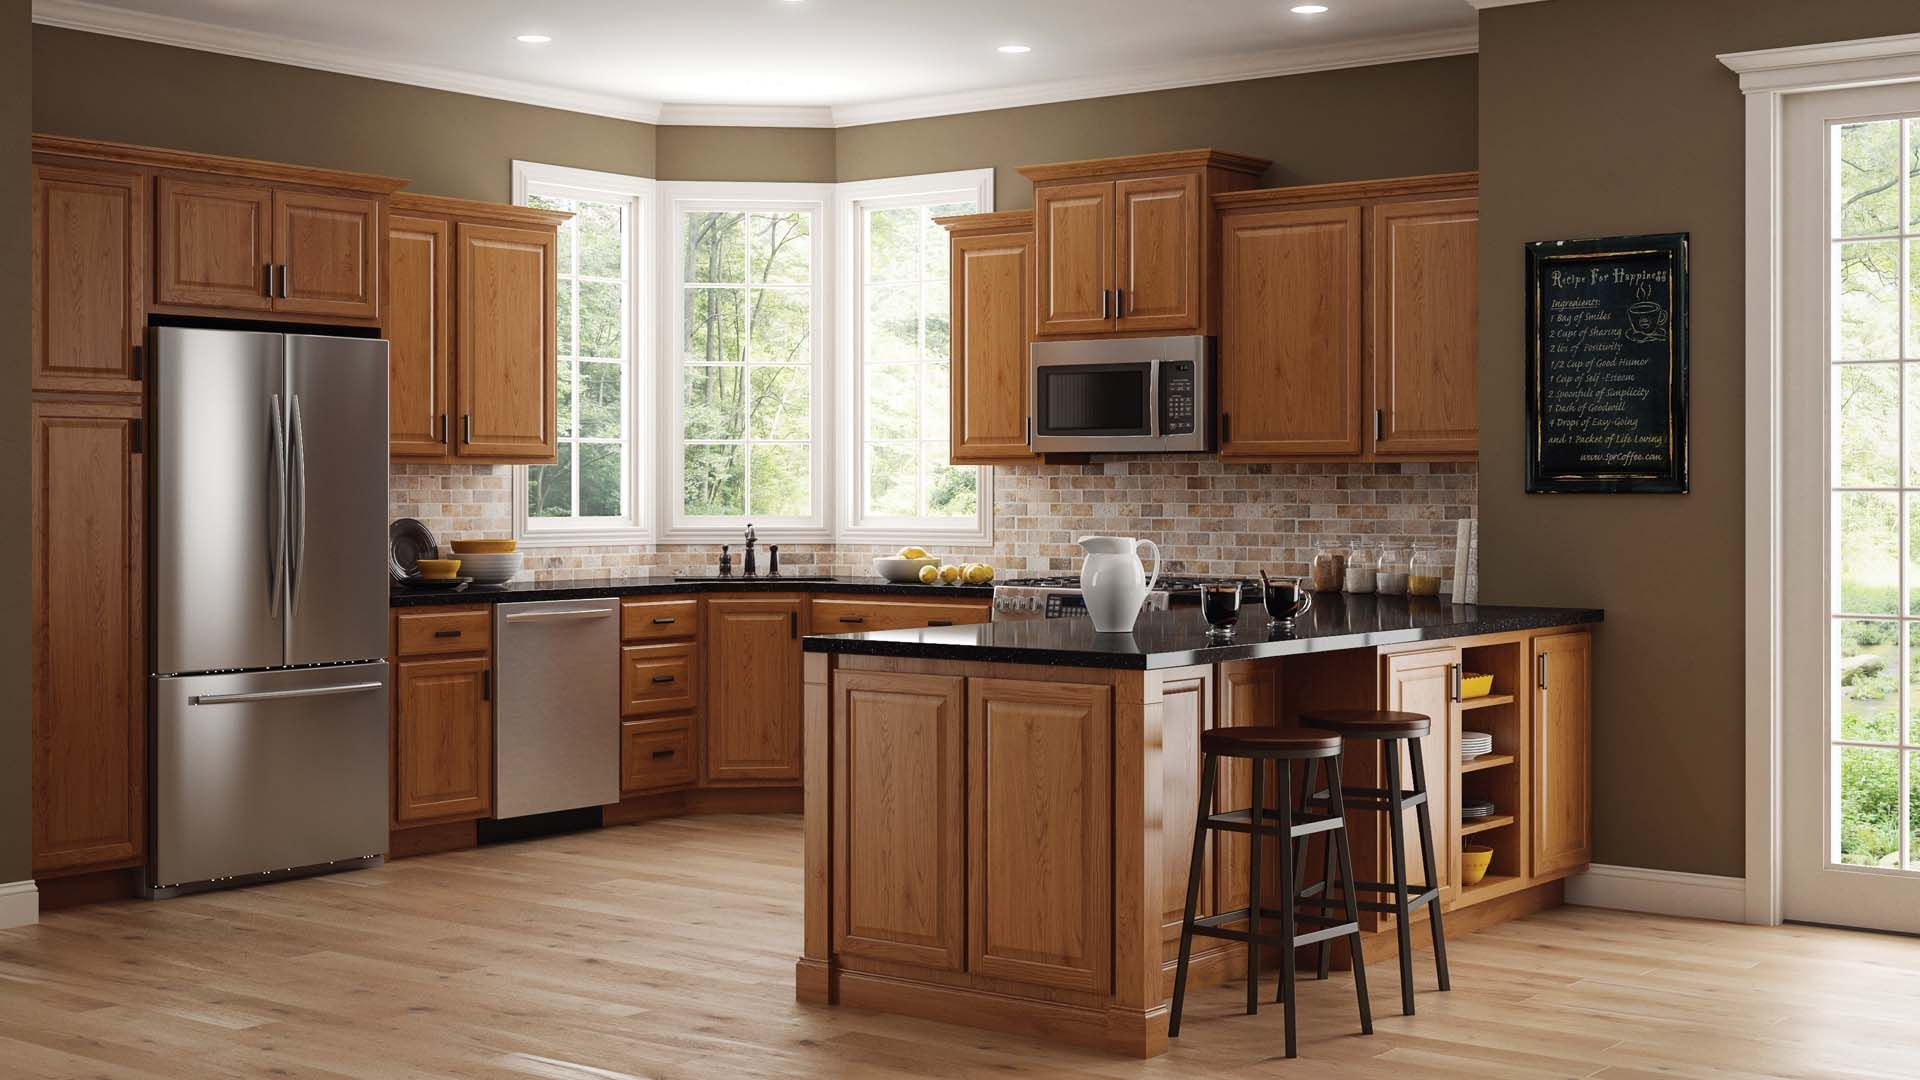 Pros And Cons About Painting Kitchen Cabinets